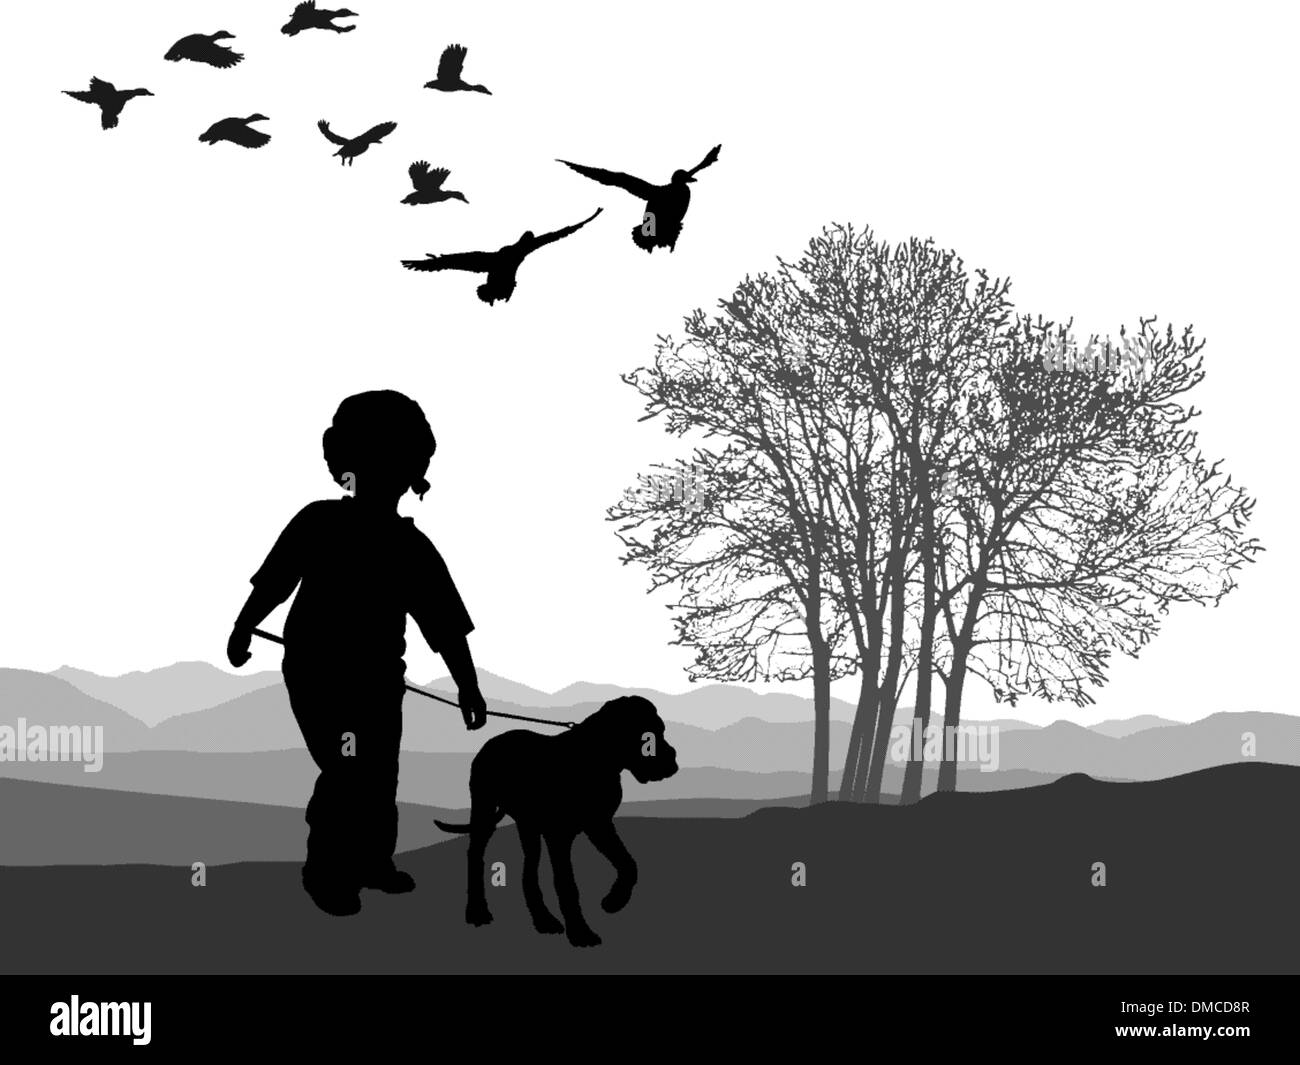 Boy and puppy - Stock Vector